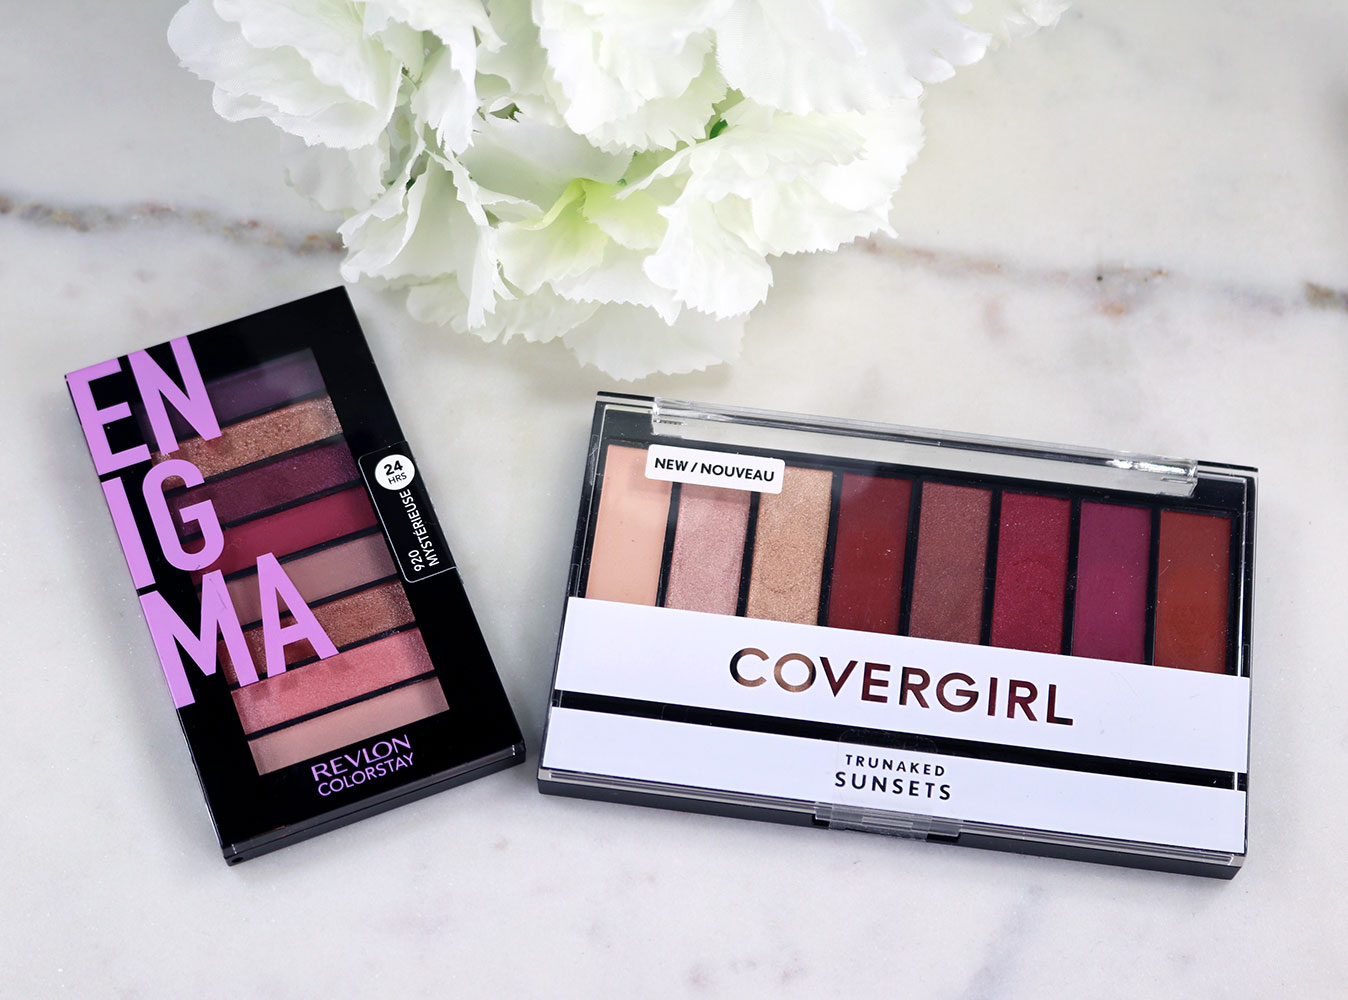 Cruelty free Covergirl dupes for Revlon makeup